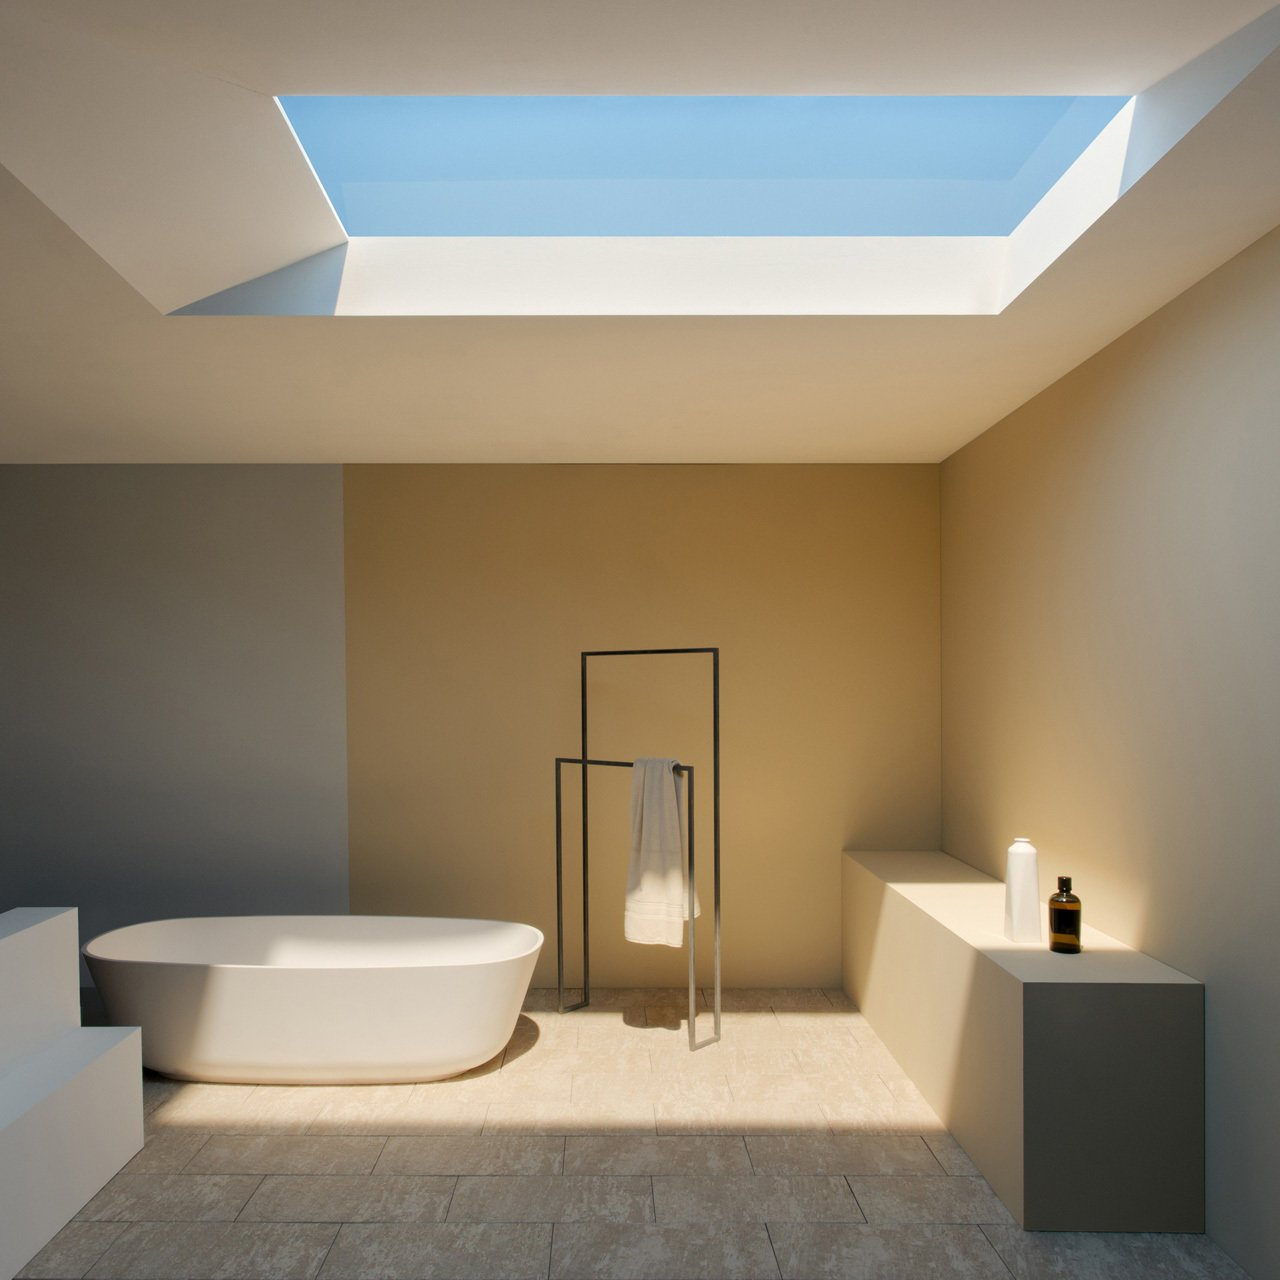 Coelux 60 Artificial Windows  Photo 10 of 10 in How to Bring Light Into Dark Spaces